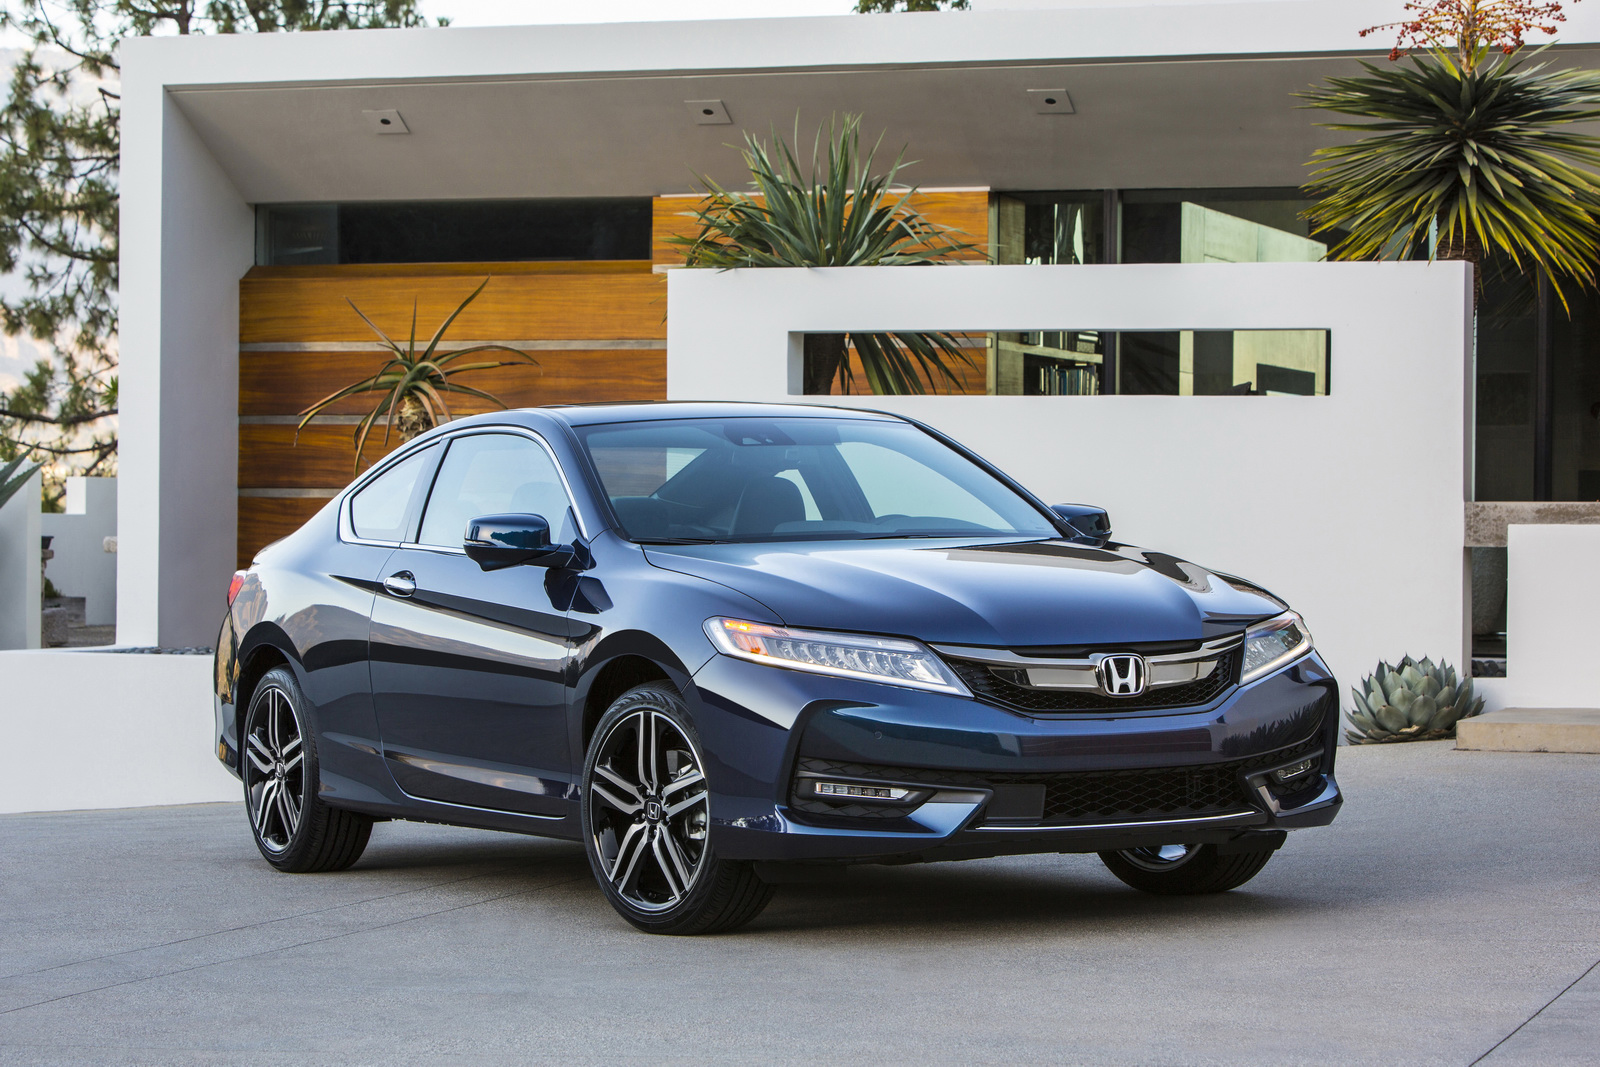 2019 Honda Accord Wagon photo - 6